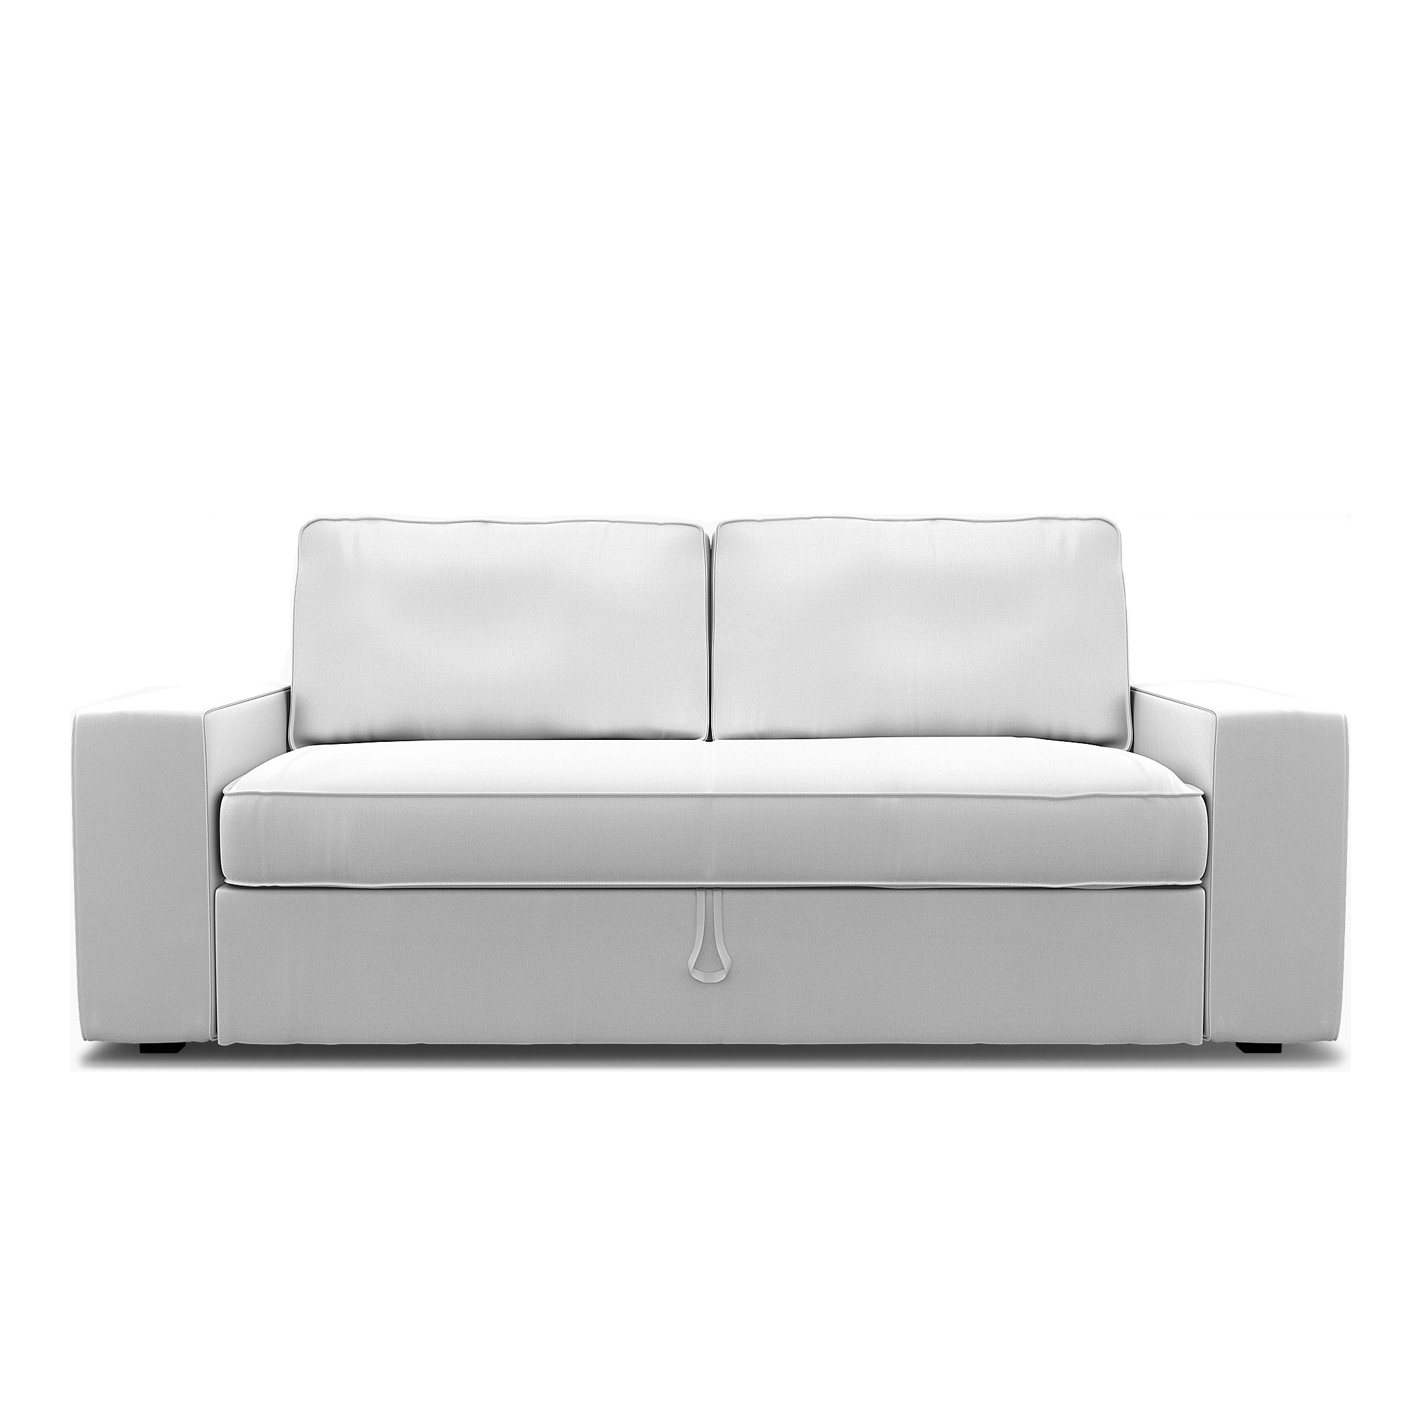 Custom Covers Slipcovers For Ikea Sofas Armchairs Couches